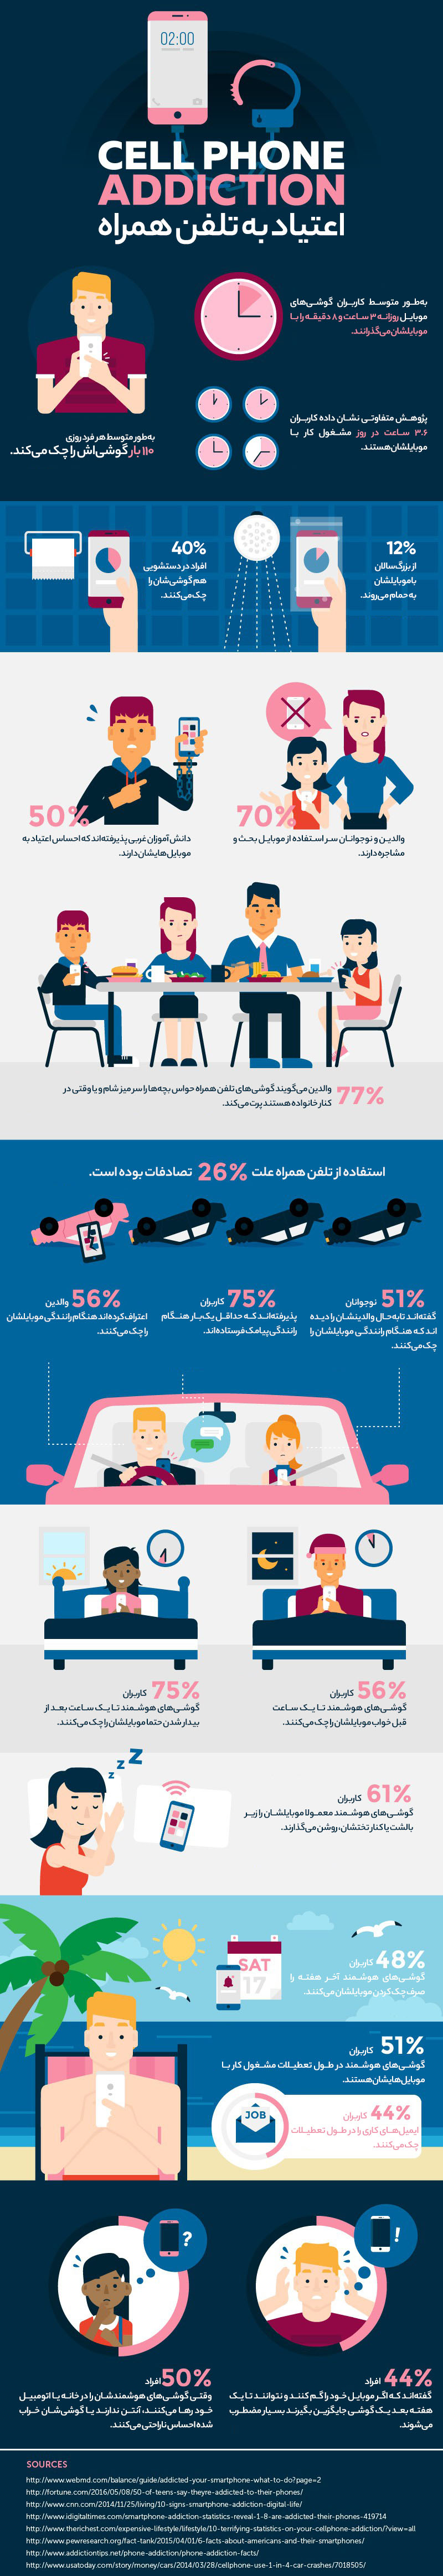 Info-cell-phone-addiction